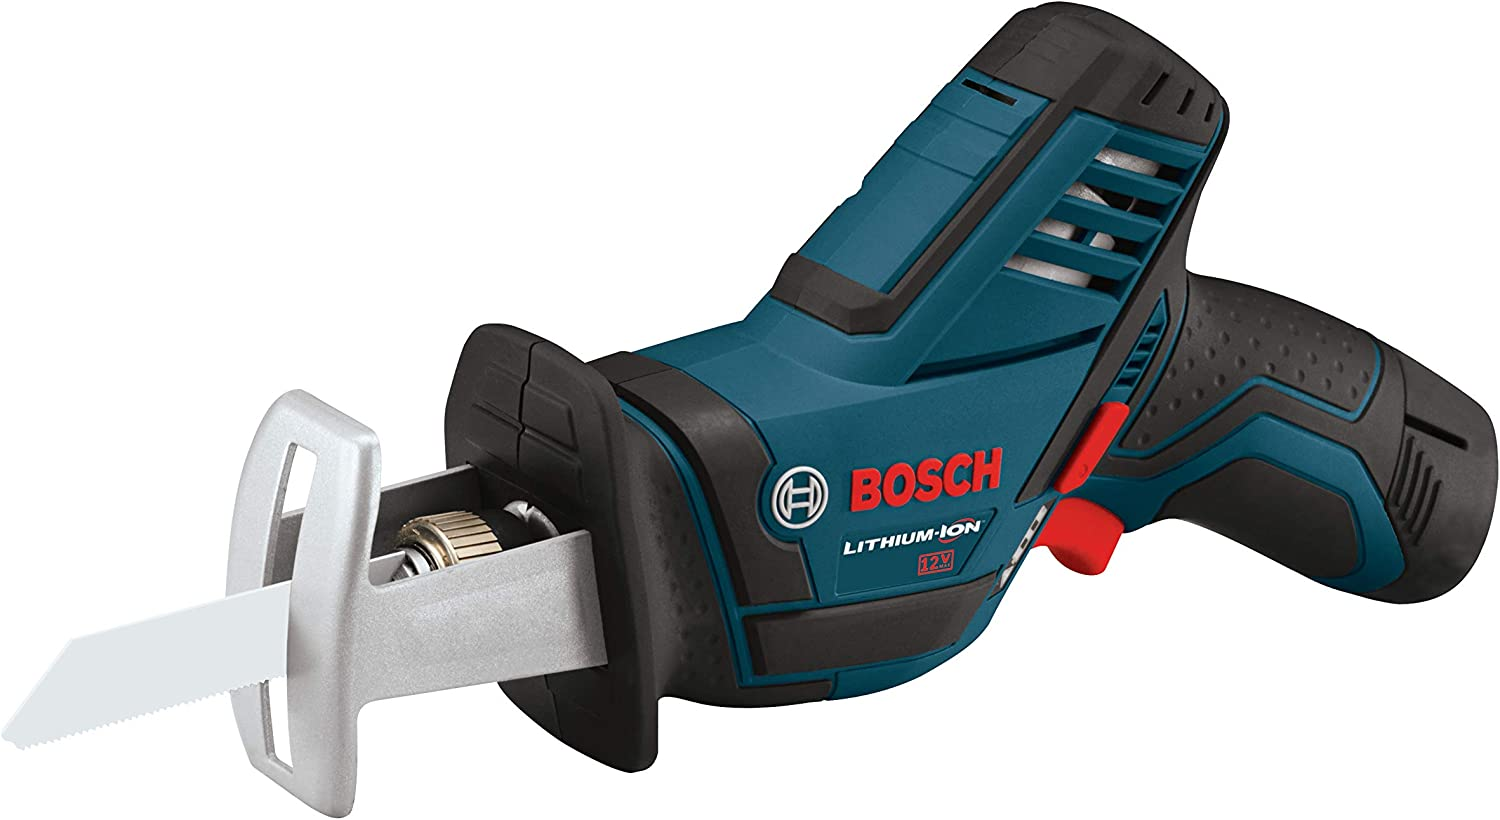 Bosch 12-Volt Max Pocket Reciprocating Saw Kit PS60-102